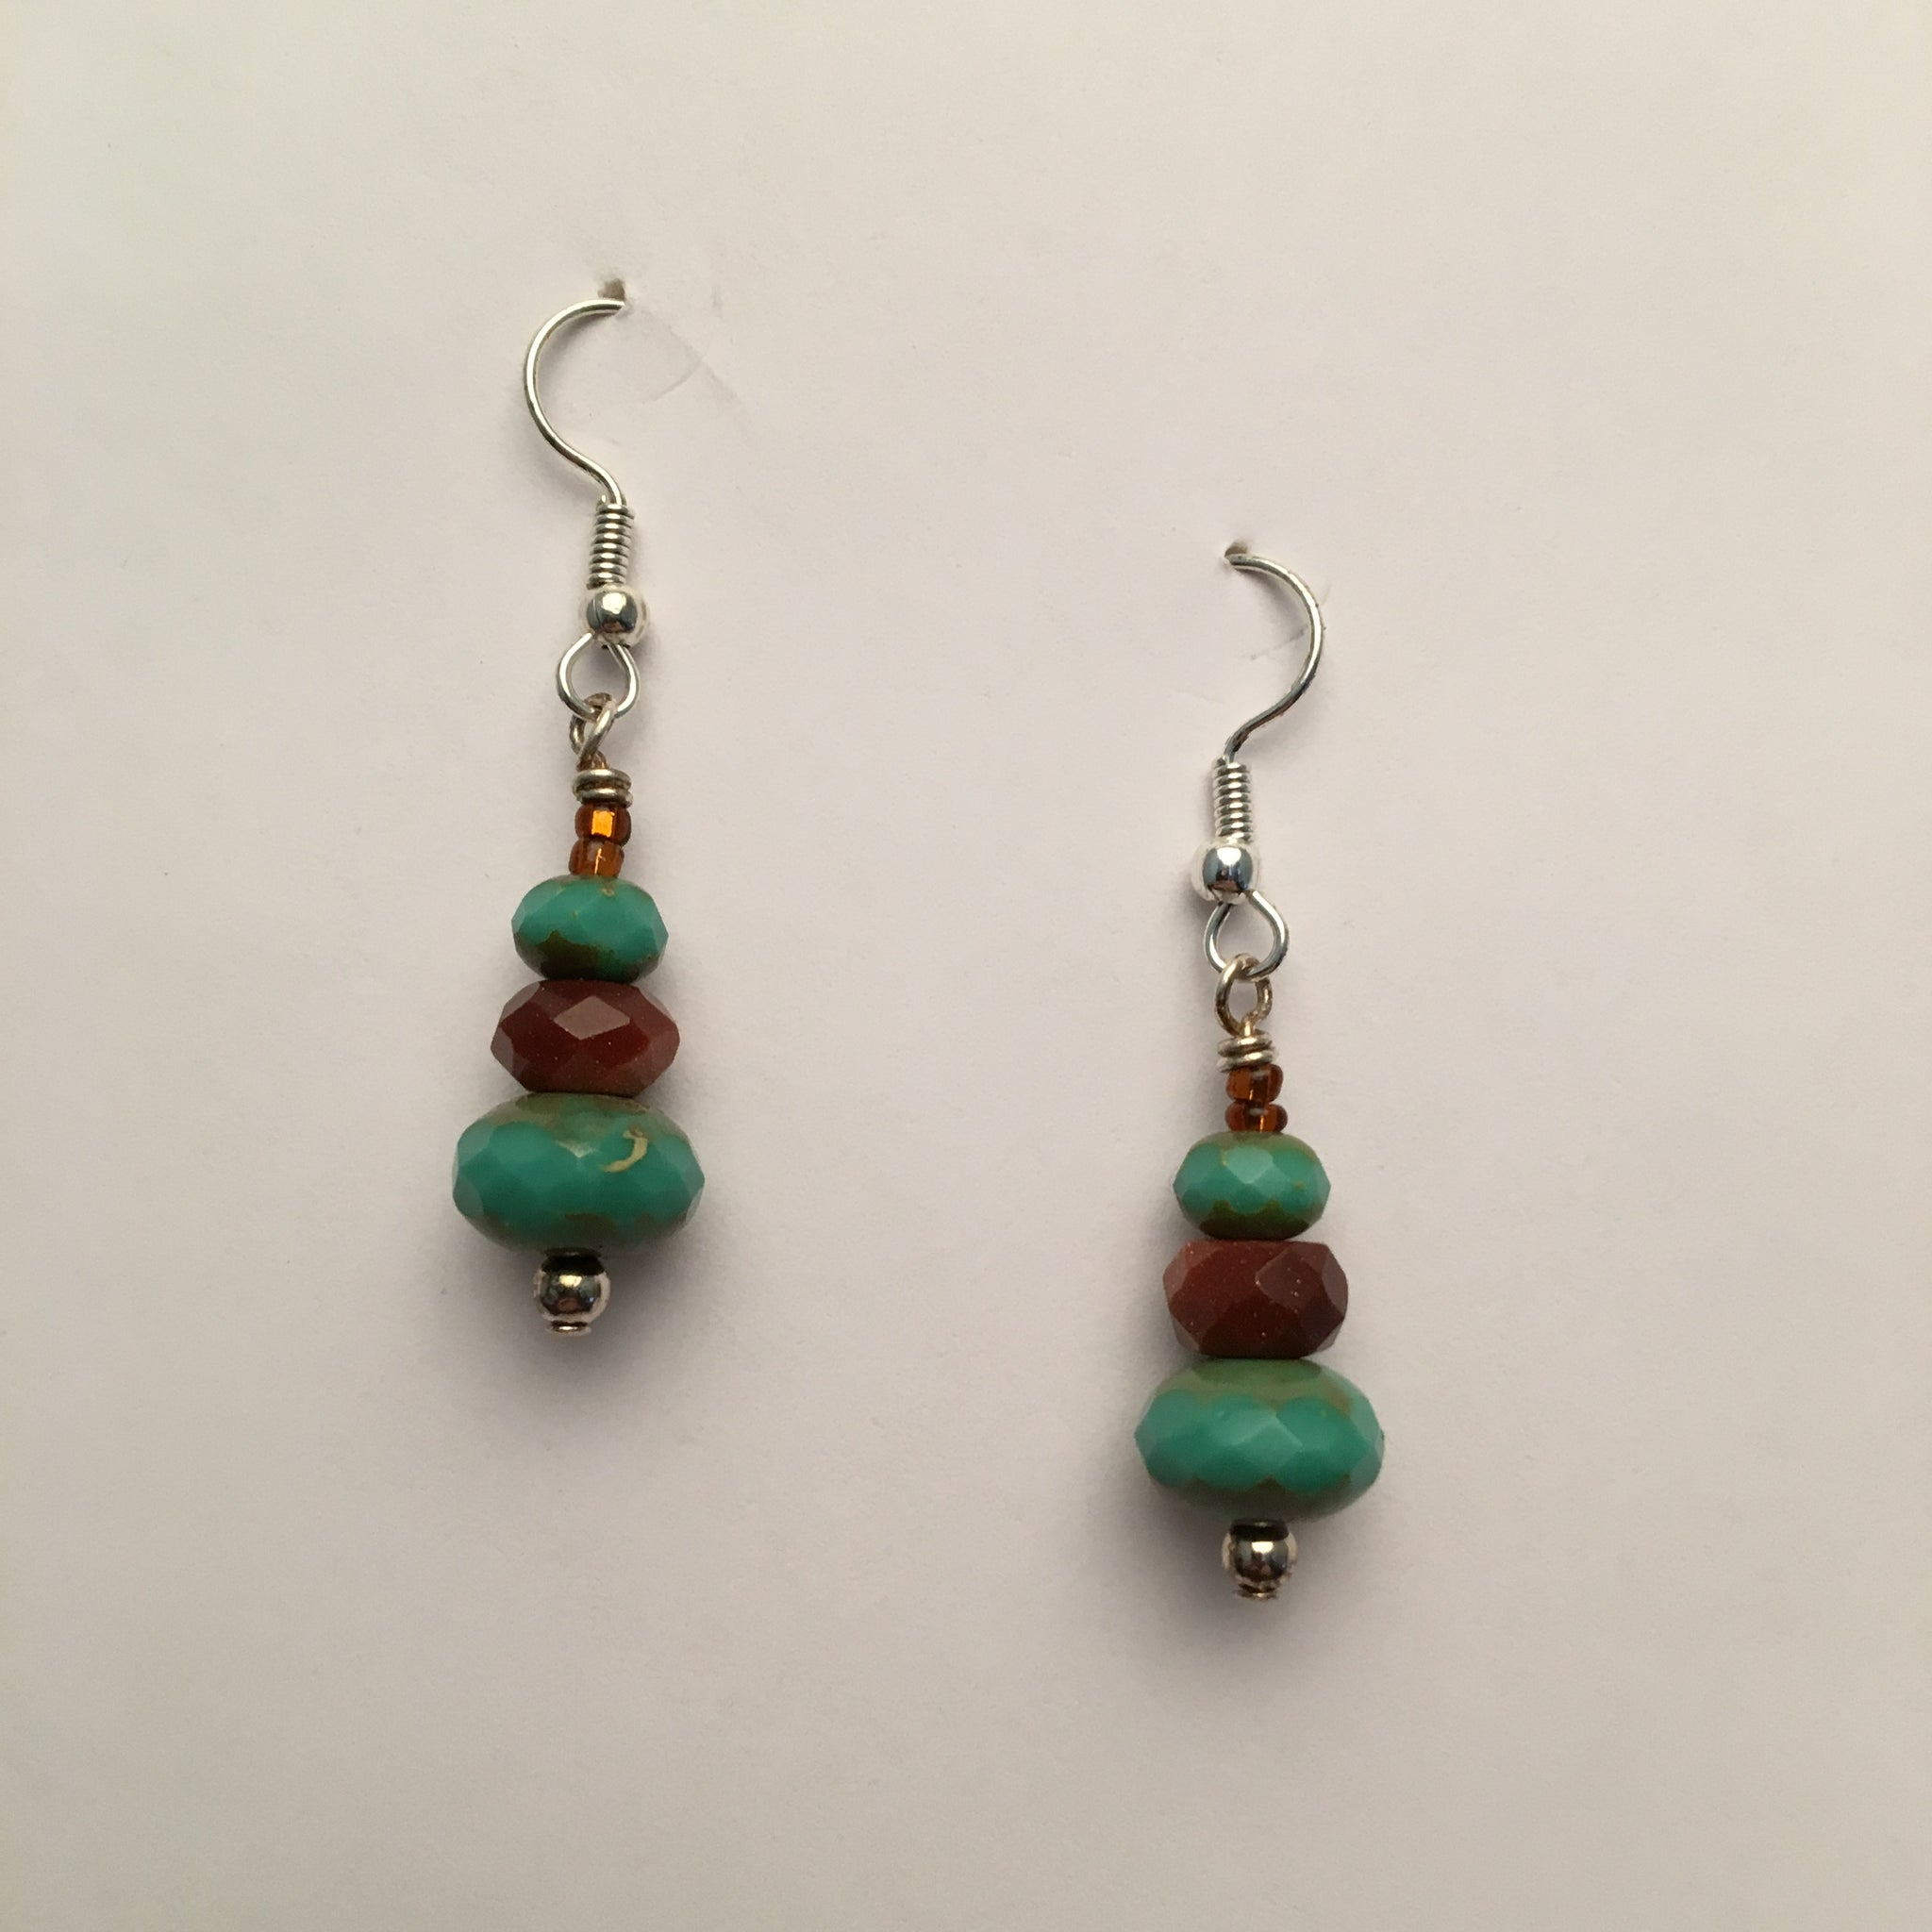 Vintage Beaded Earrings #7